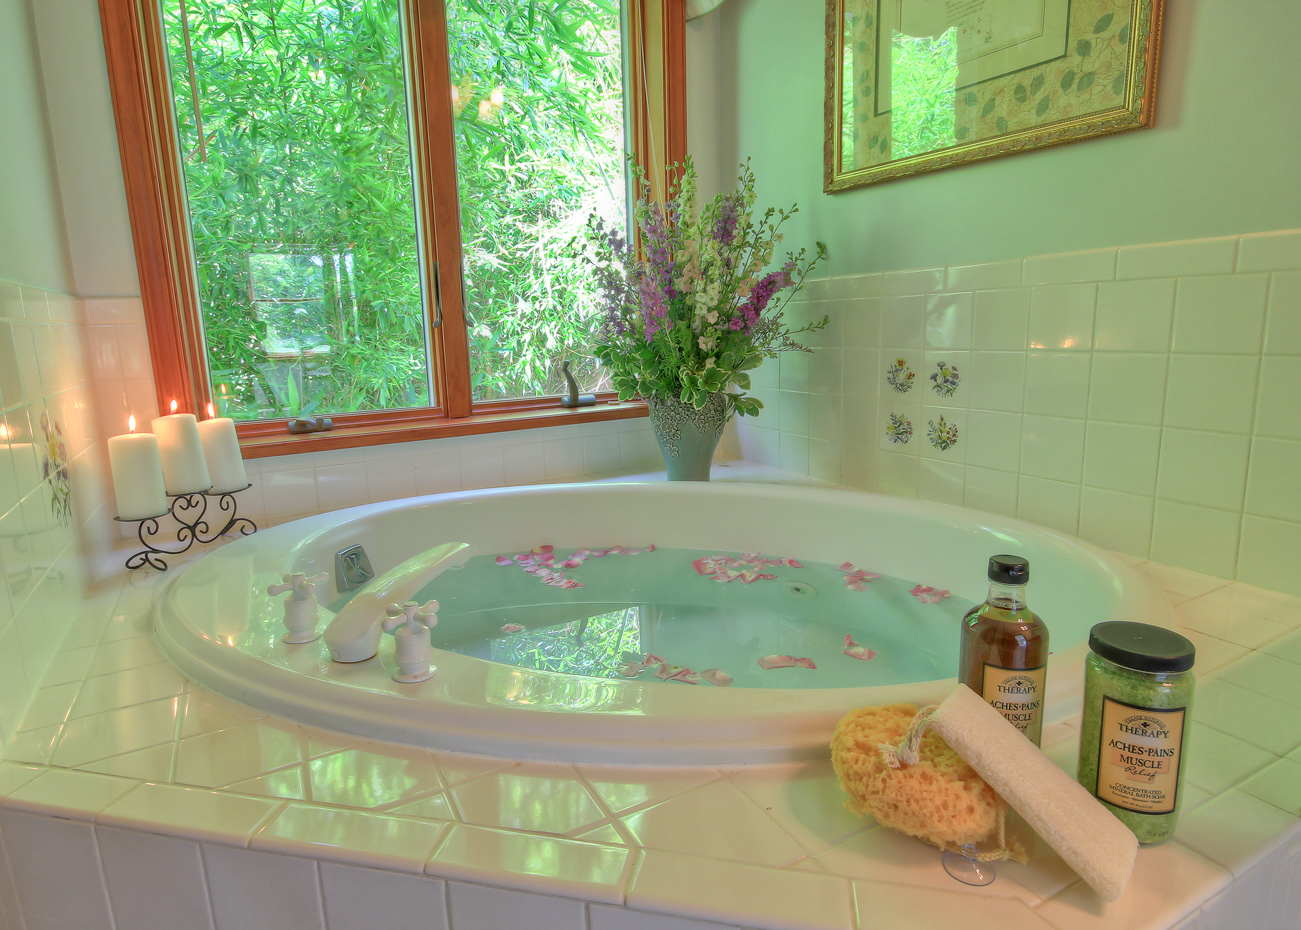 corner jacuzzi tub with drawn bath and rose petals and candles lit